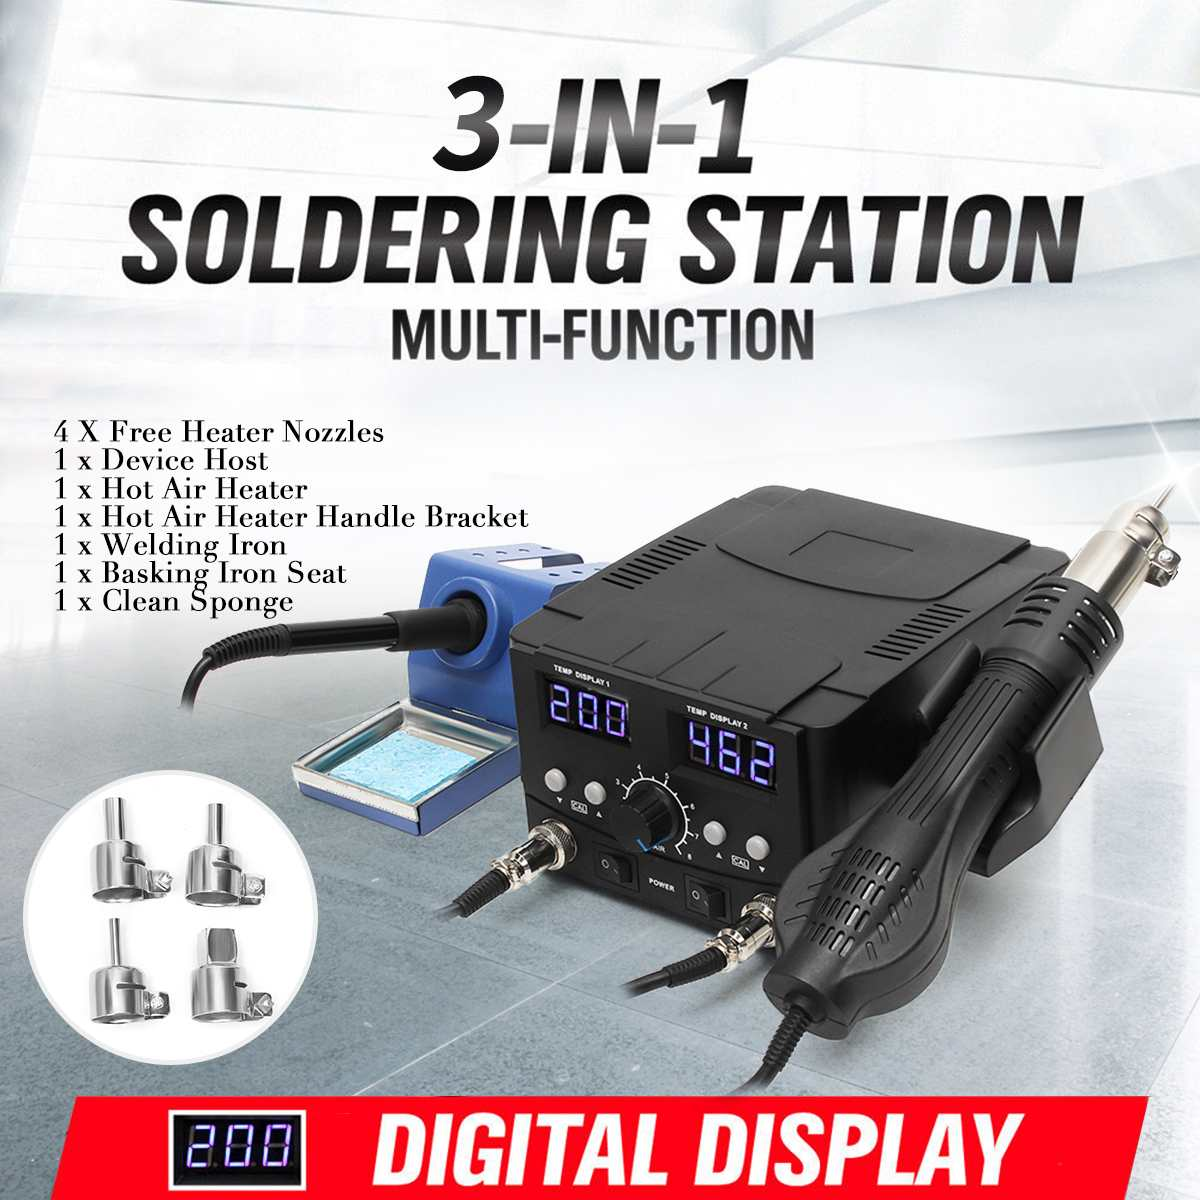 750W 110V LCD Rework Soldering Station 8582D Electric Hot Air Gun Heater SMD Desoldering Iron Station Solder Welding Machine750W 110V LCD Rework Soldering Station 8582D Electric Hot Air Gun Heater SMD Desoldering Iron Station Solder Welding Machine